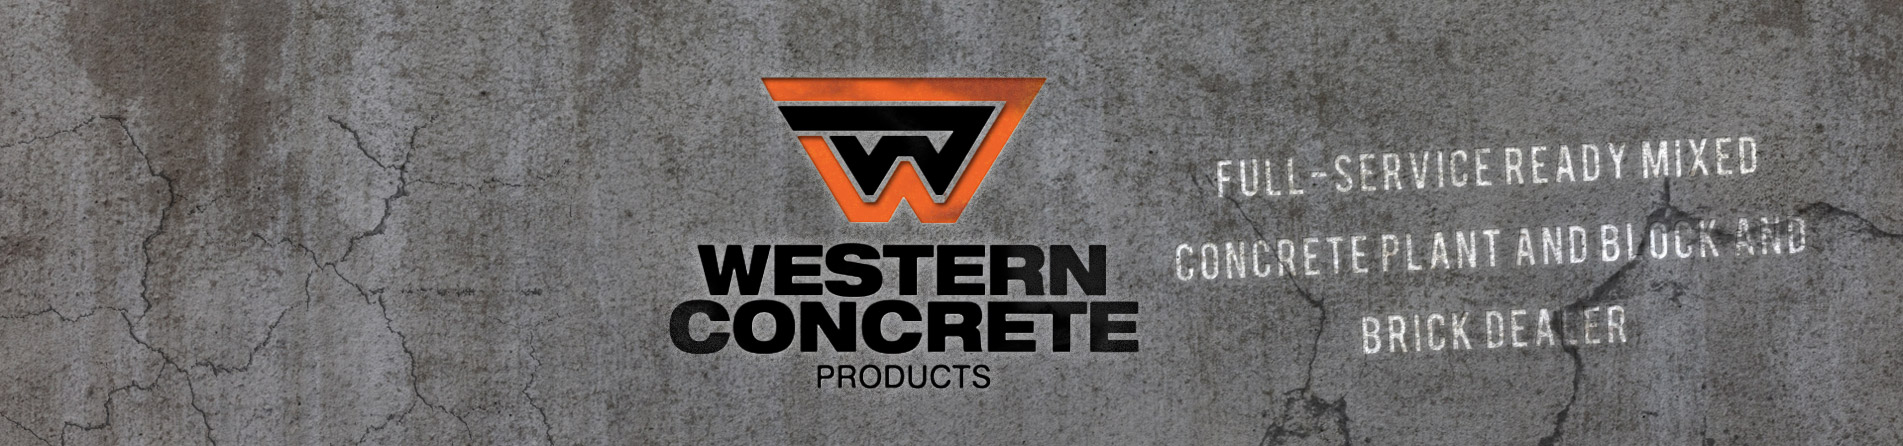 Western Concrete, Concrete pumping, concrete supply, Brandon